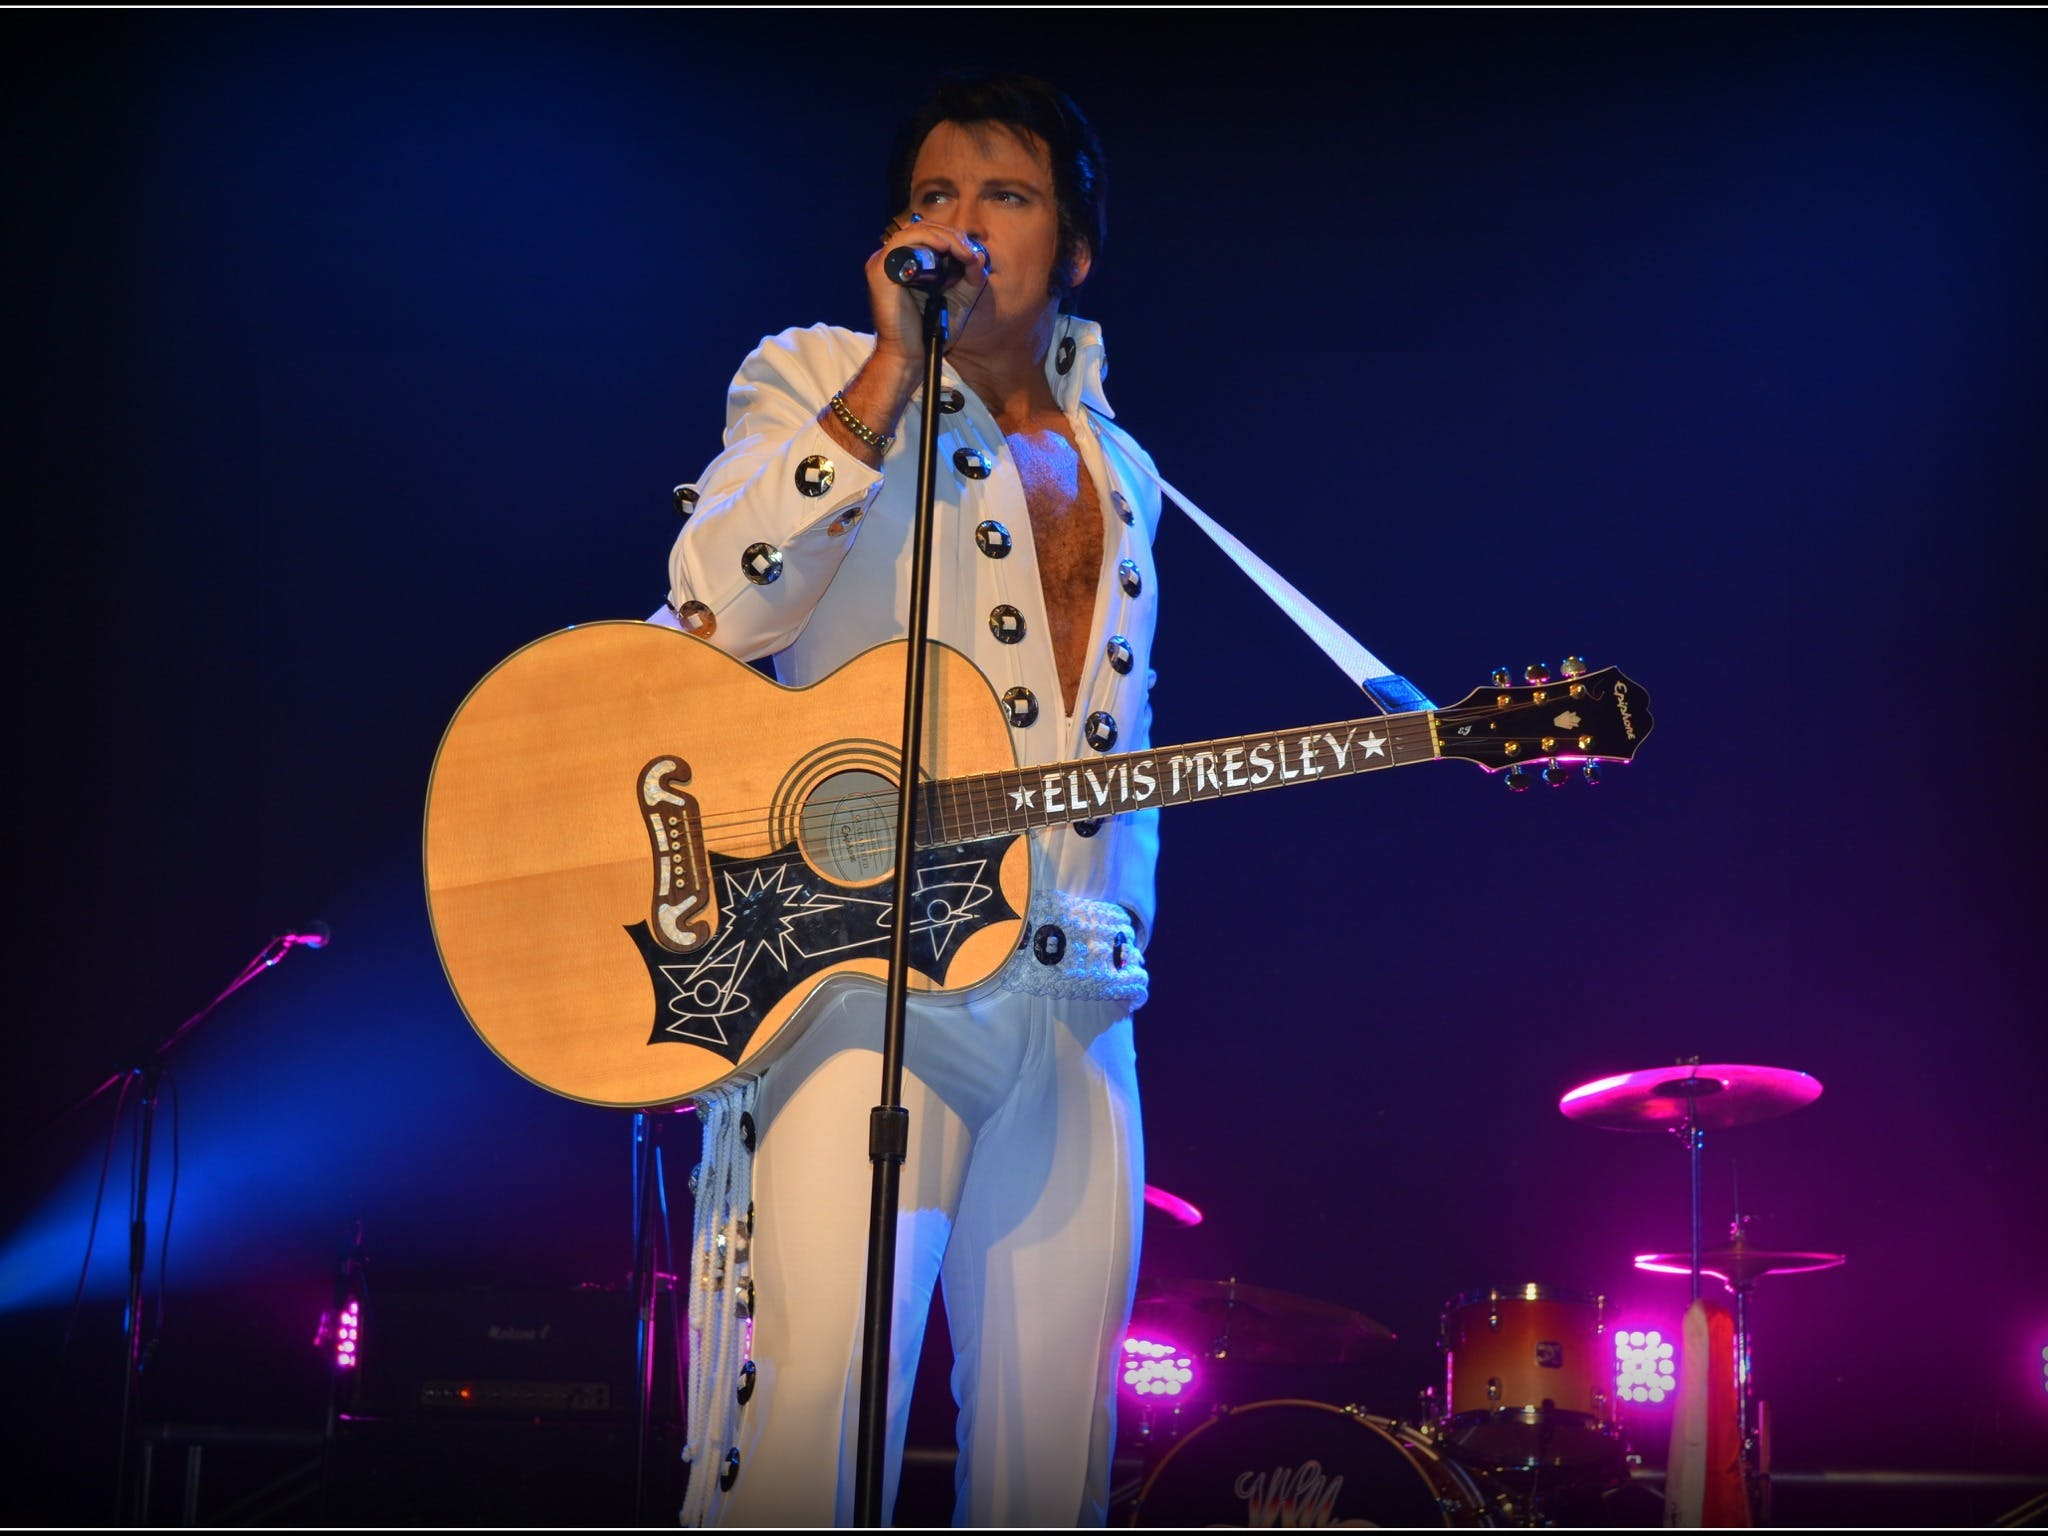 Elvis Forever - Damian Mullin 'Up Close and Personal' - Sydney Tourism